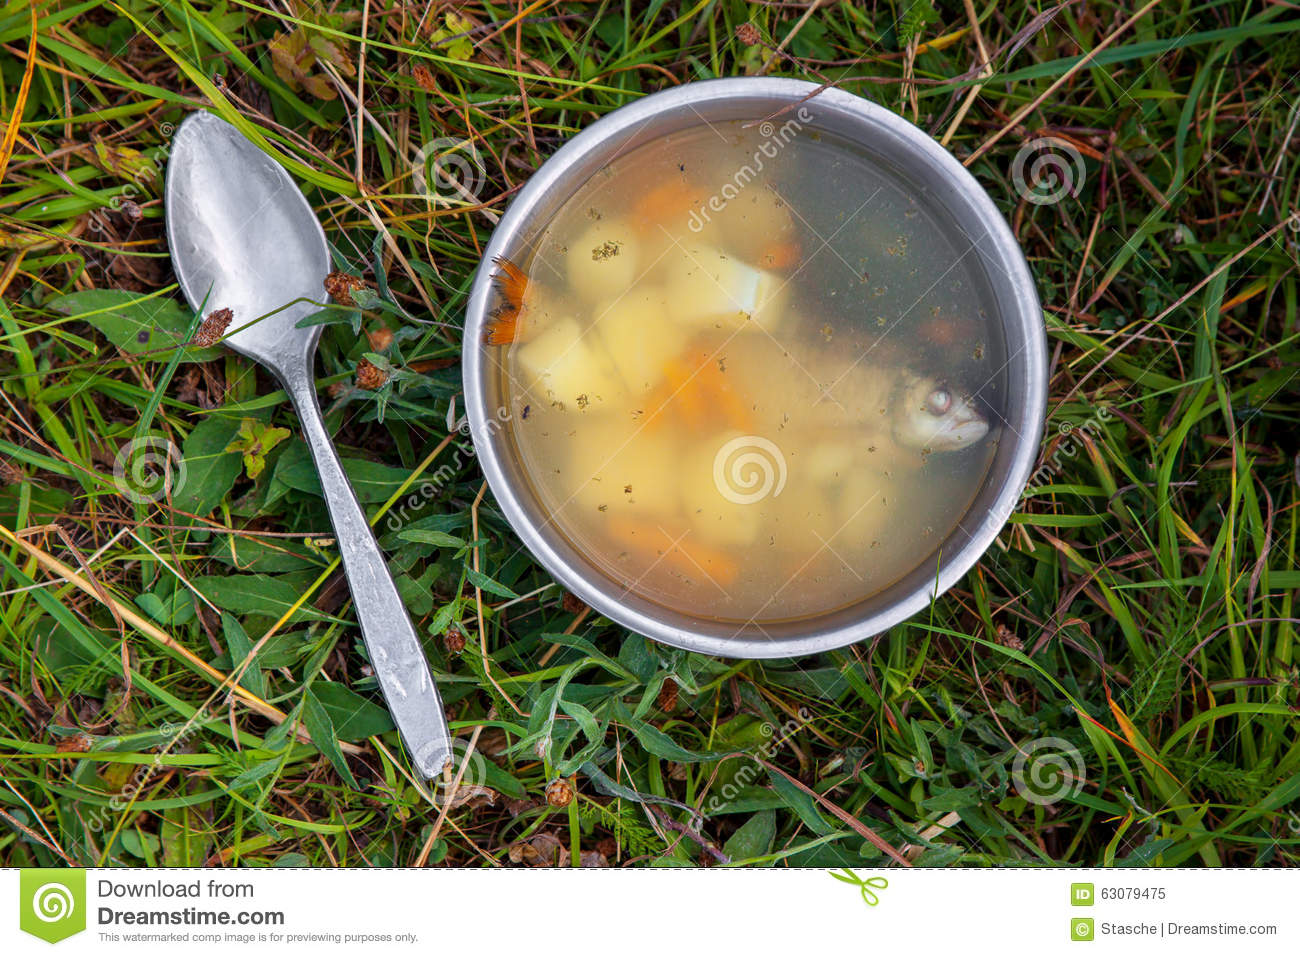 Download Potage de poissons image stock. Image du cuit, cuisine - 63079475